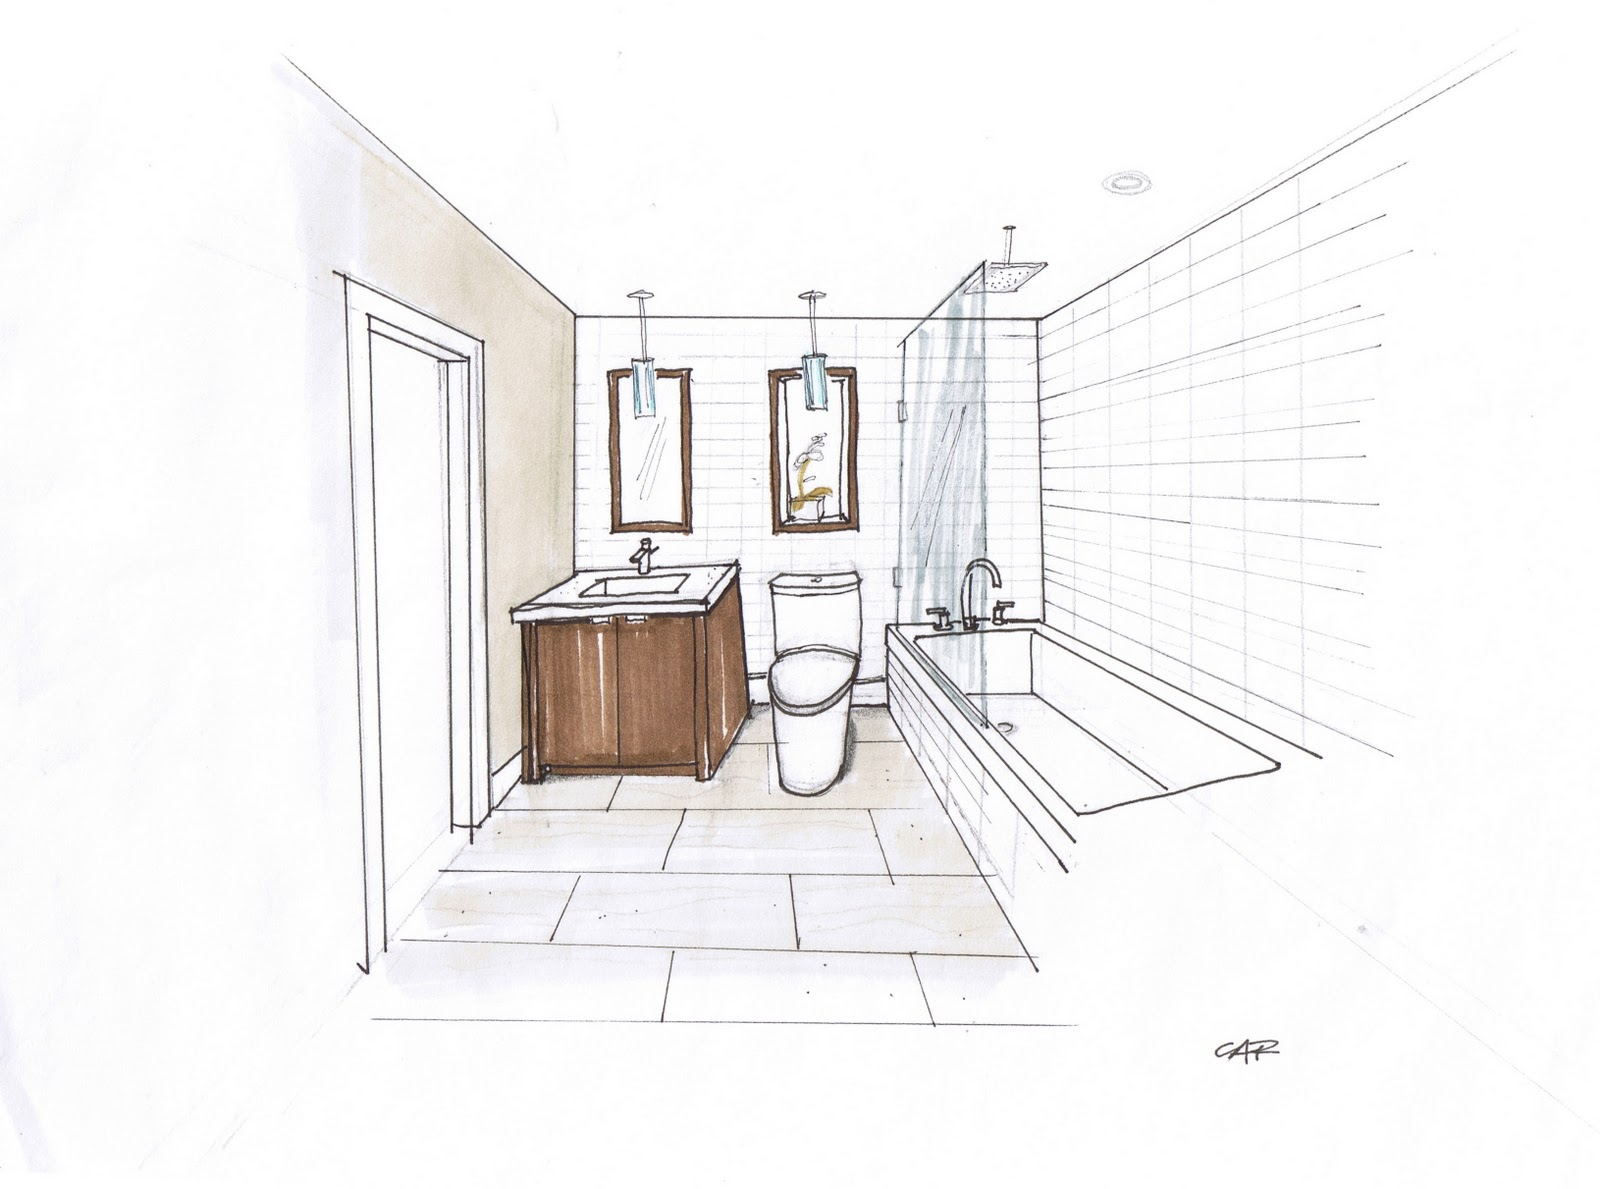 Guest Bathroom design and rendering by Carol Reed Interior Design.